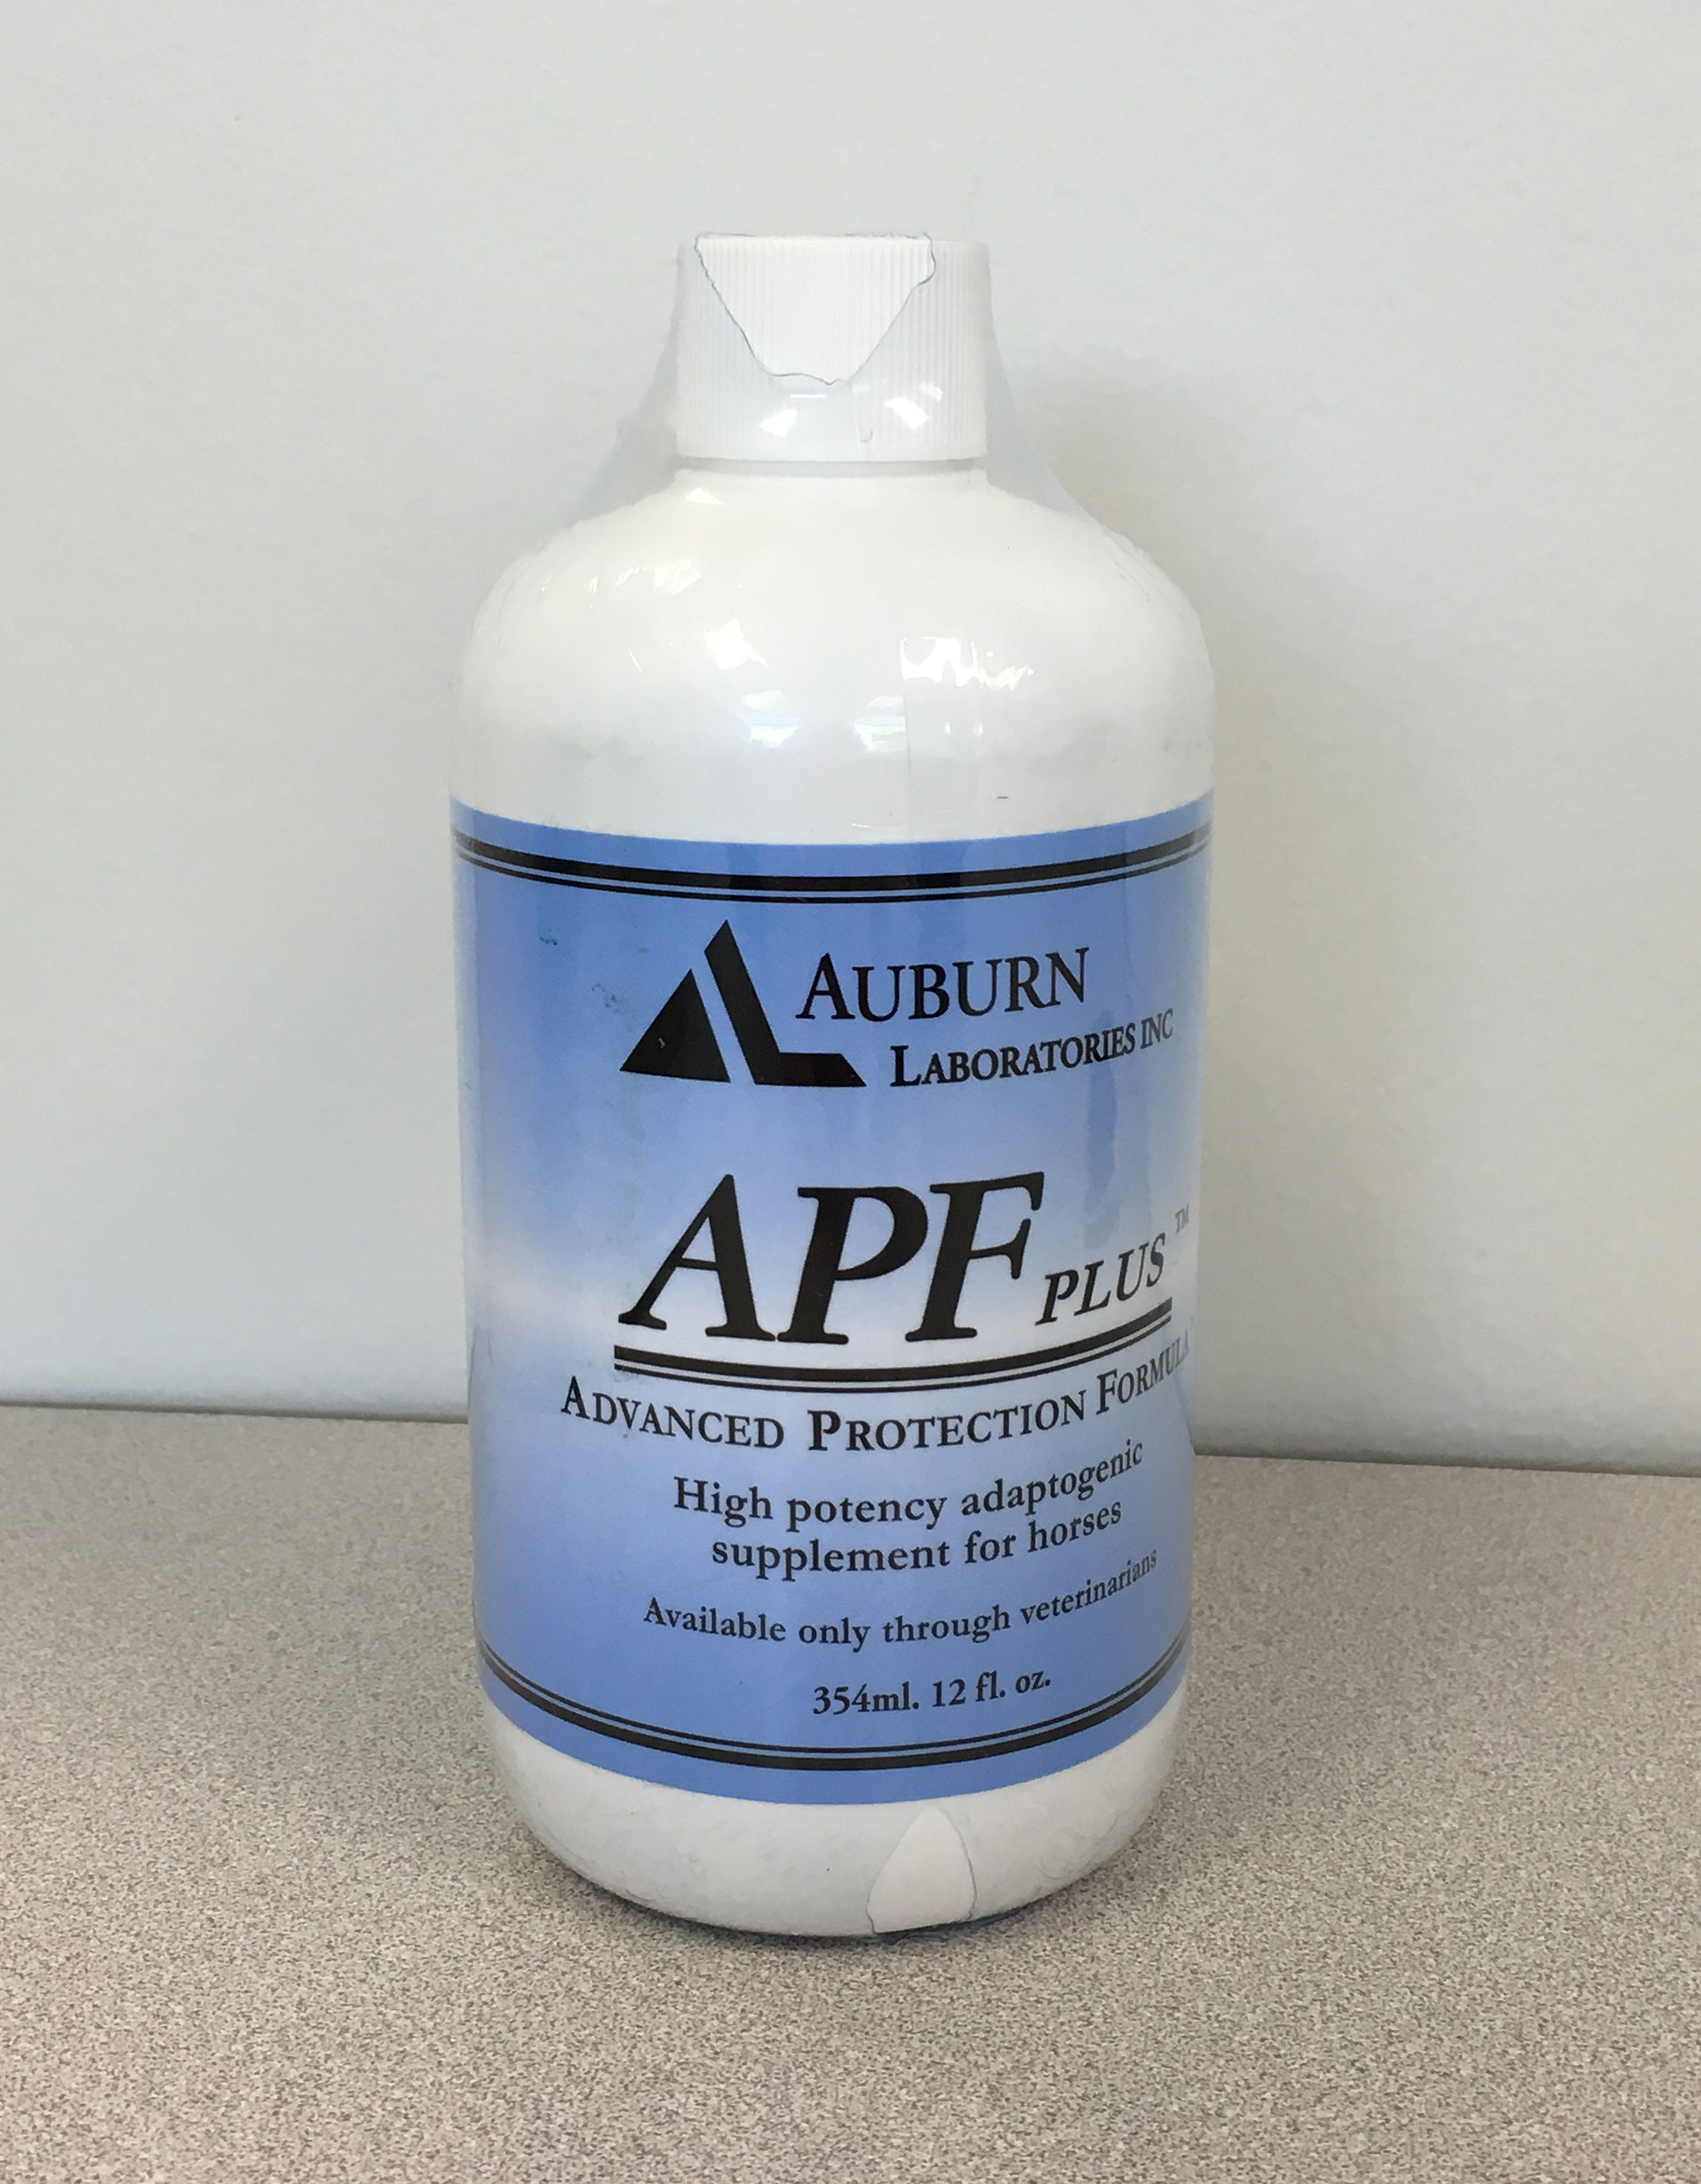 Auburn Laboratories Apf Pro Equine Business & Industrial 120 Ml Bottle Agriculture & Forestry